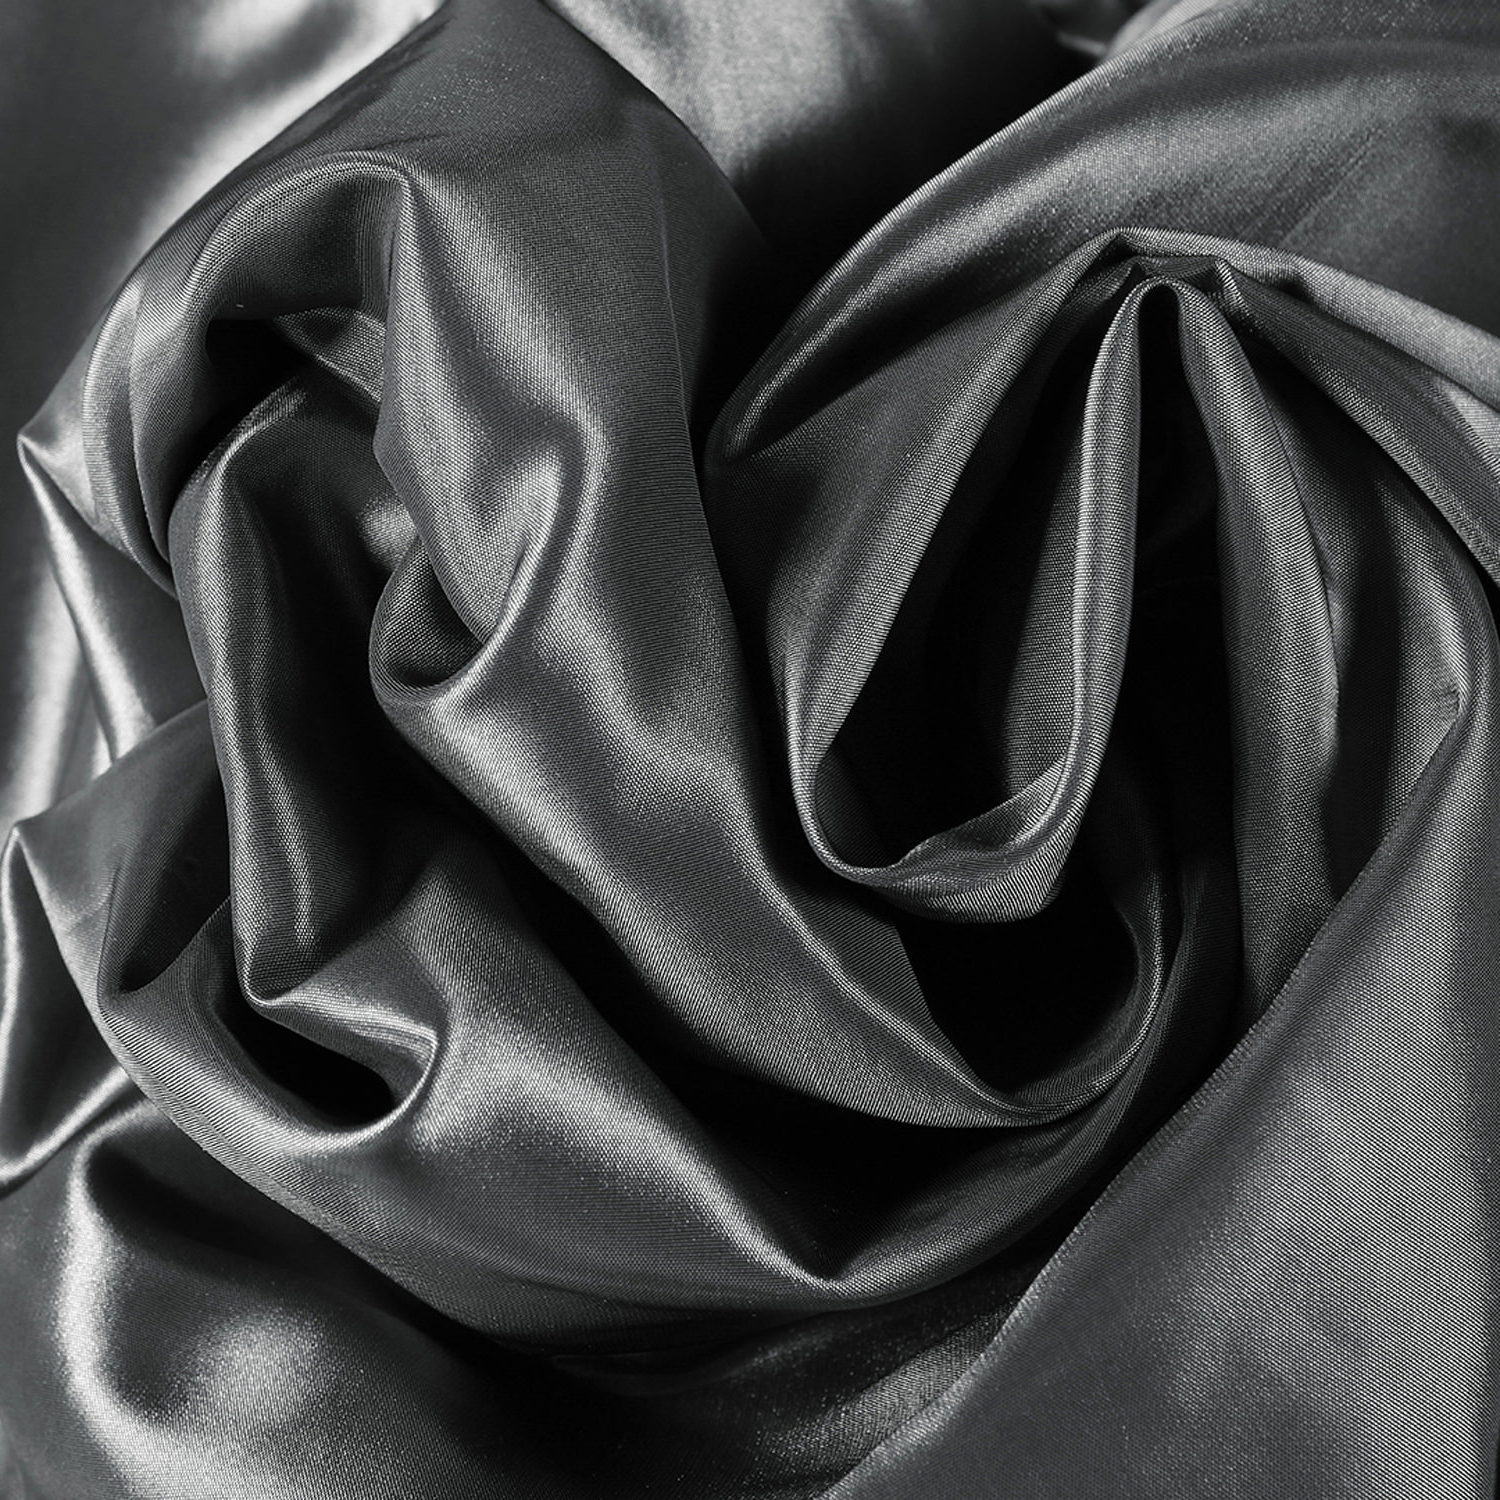 Graphite Faux Silk Taffeta Fabric – Waterford Stripe Curtain Within Most Recently Released Solid Faux Silk Taffeta Graphite Single Curtain Panels (View 12 of 20)